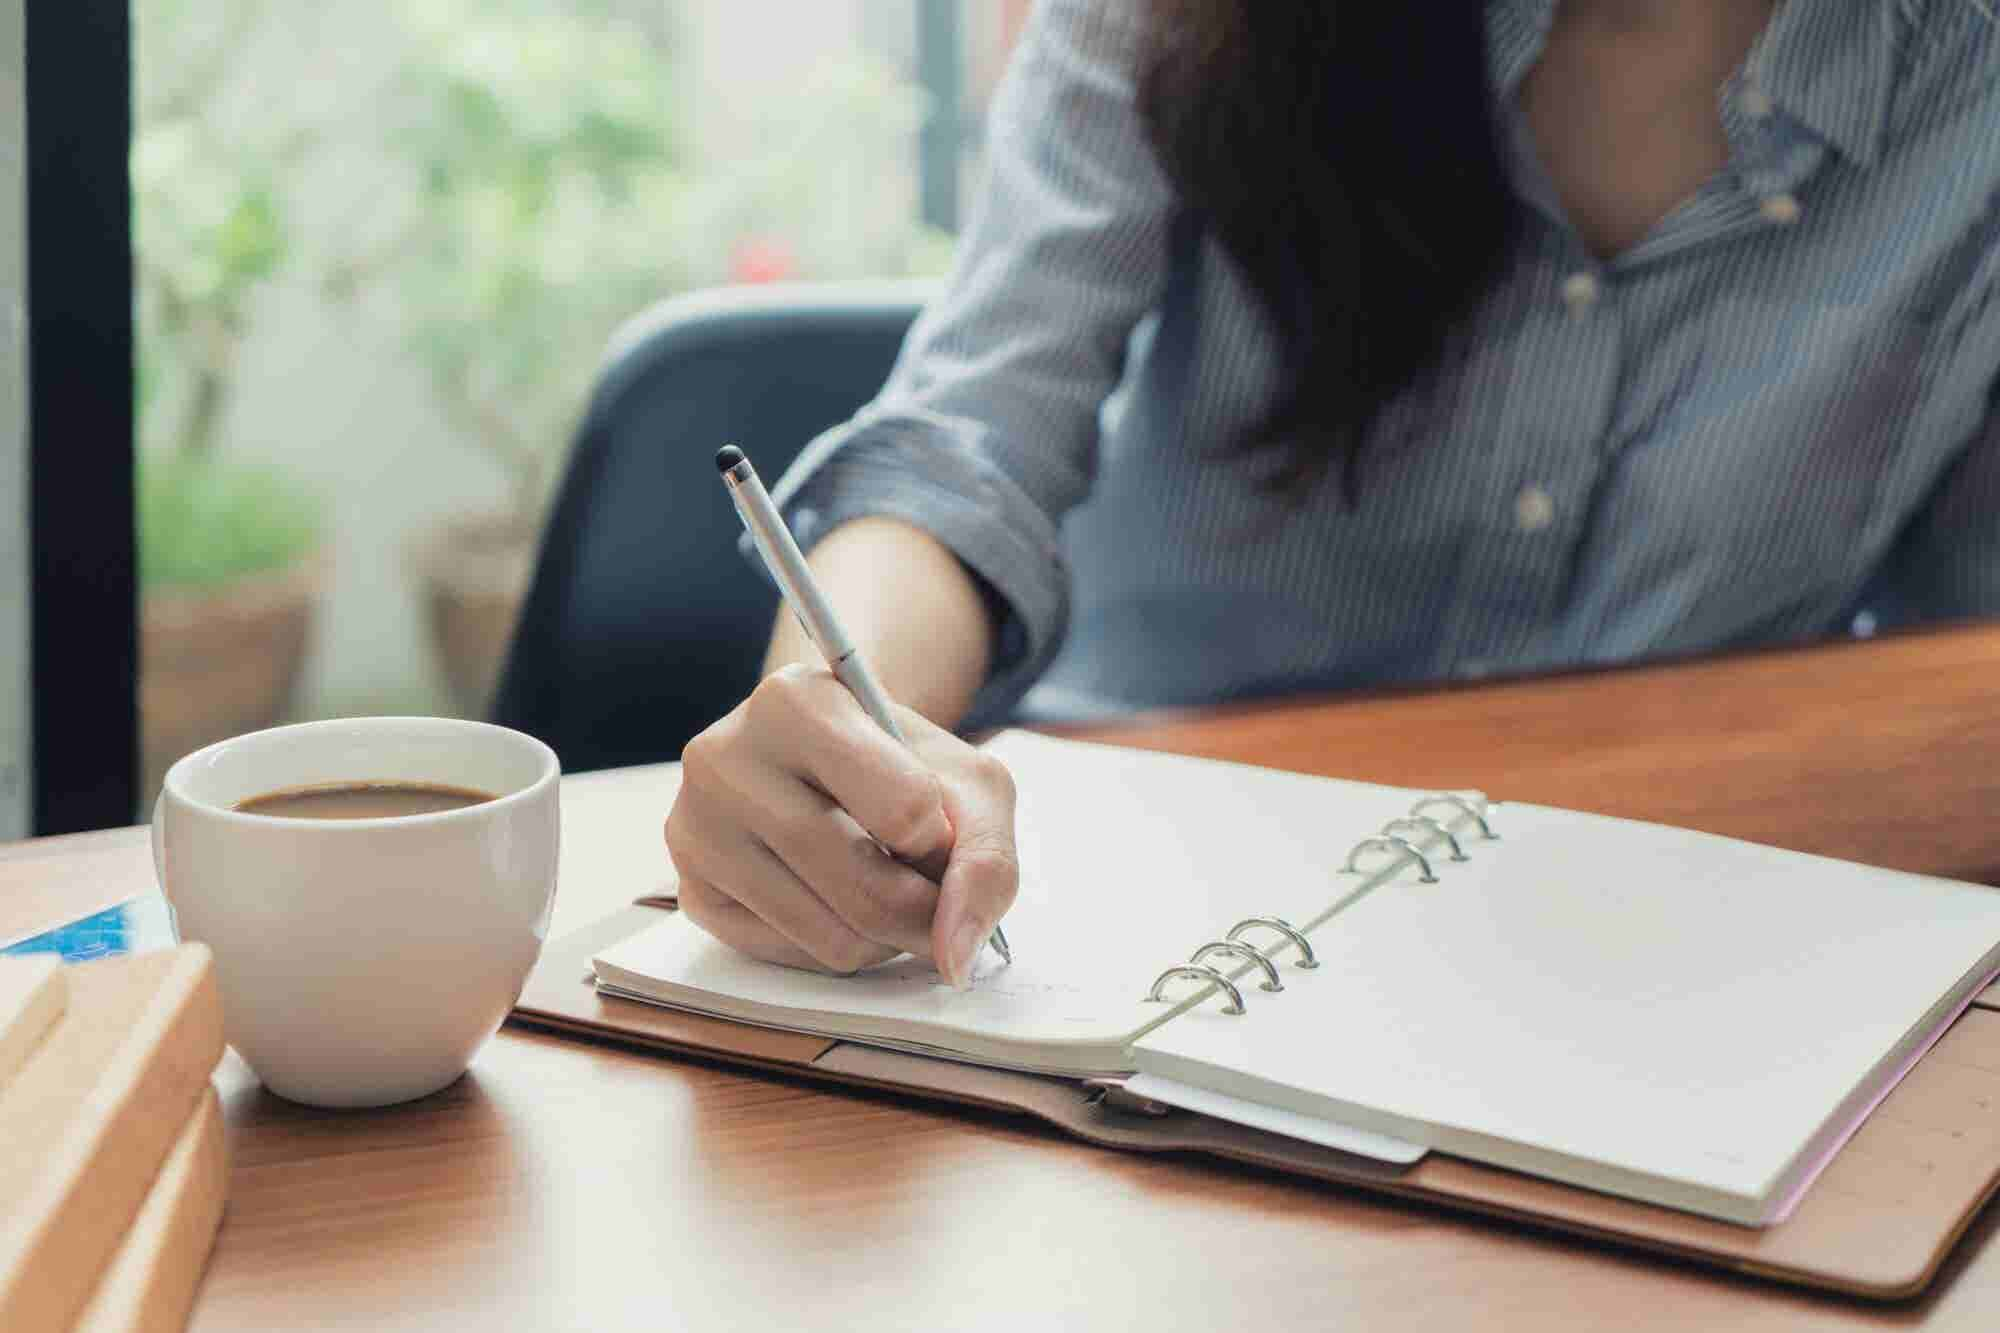 Why You Shouldn't Feel Guilty If Your To-Do List Only Gets Longer